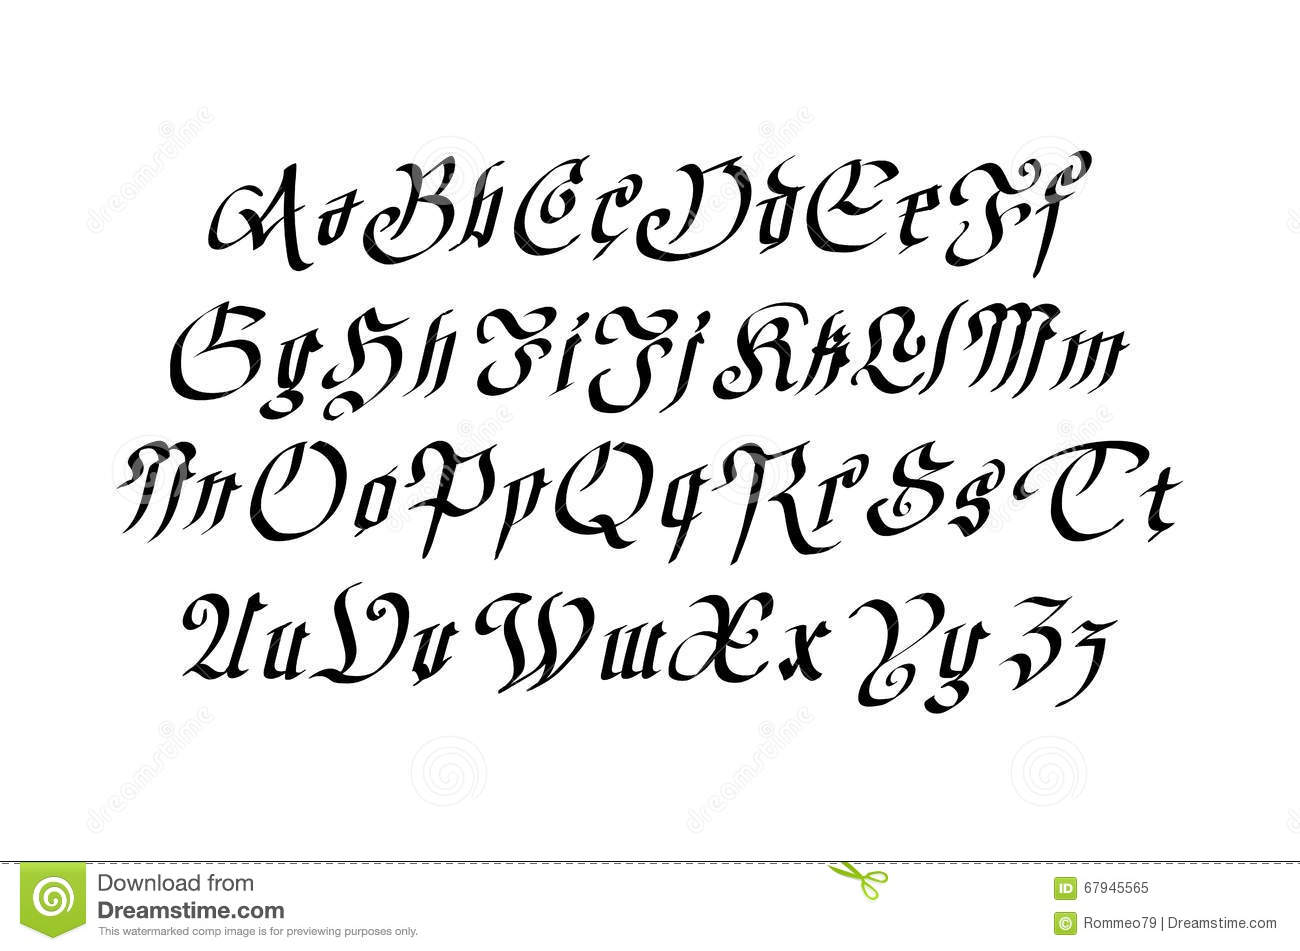 Blackletter Gothic Script Hand Drawn Font Royalty Free Stock Photo